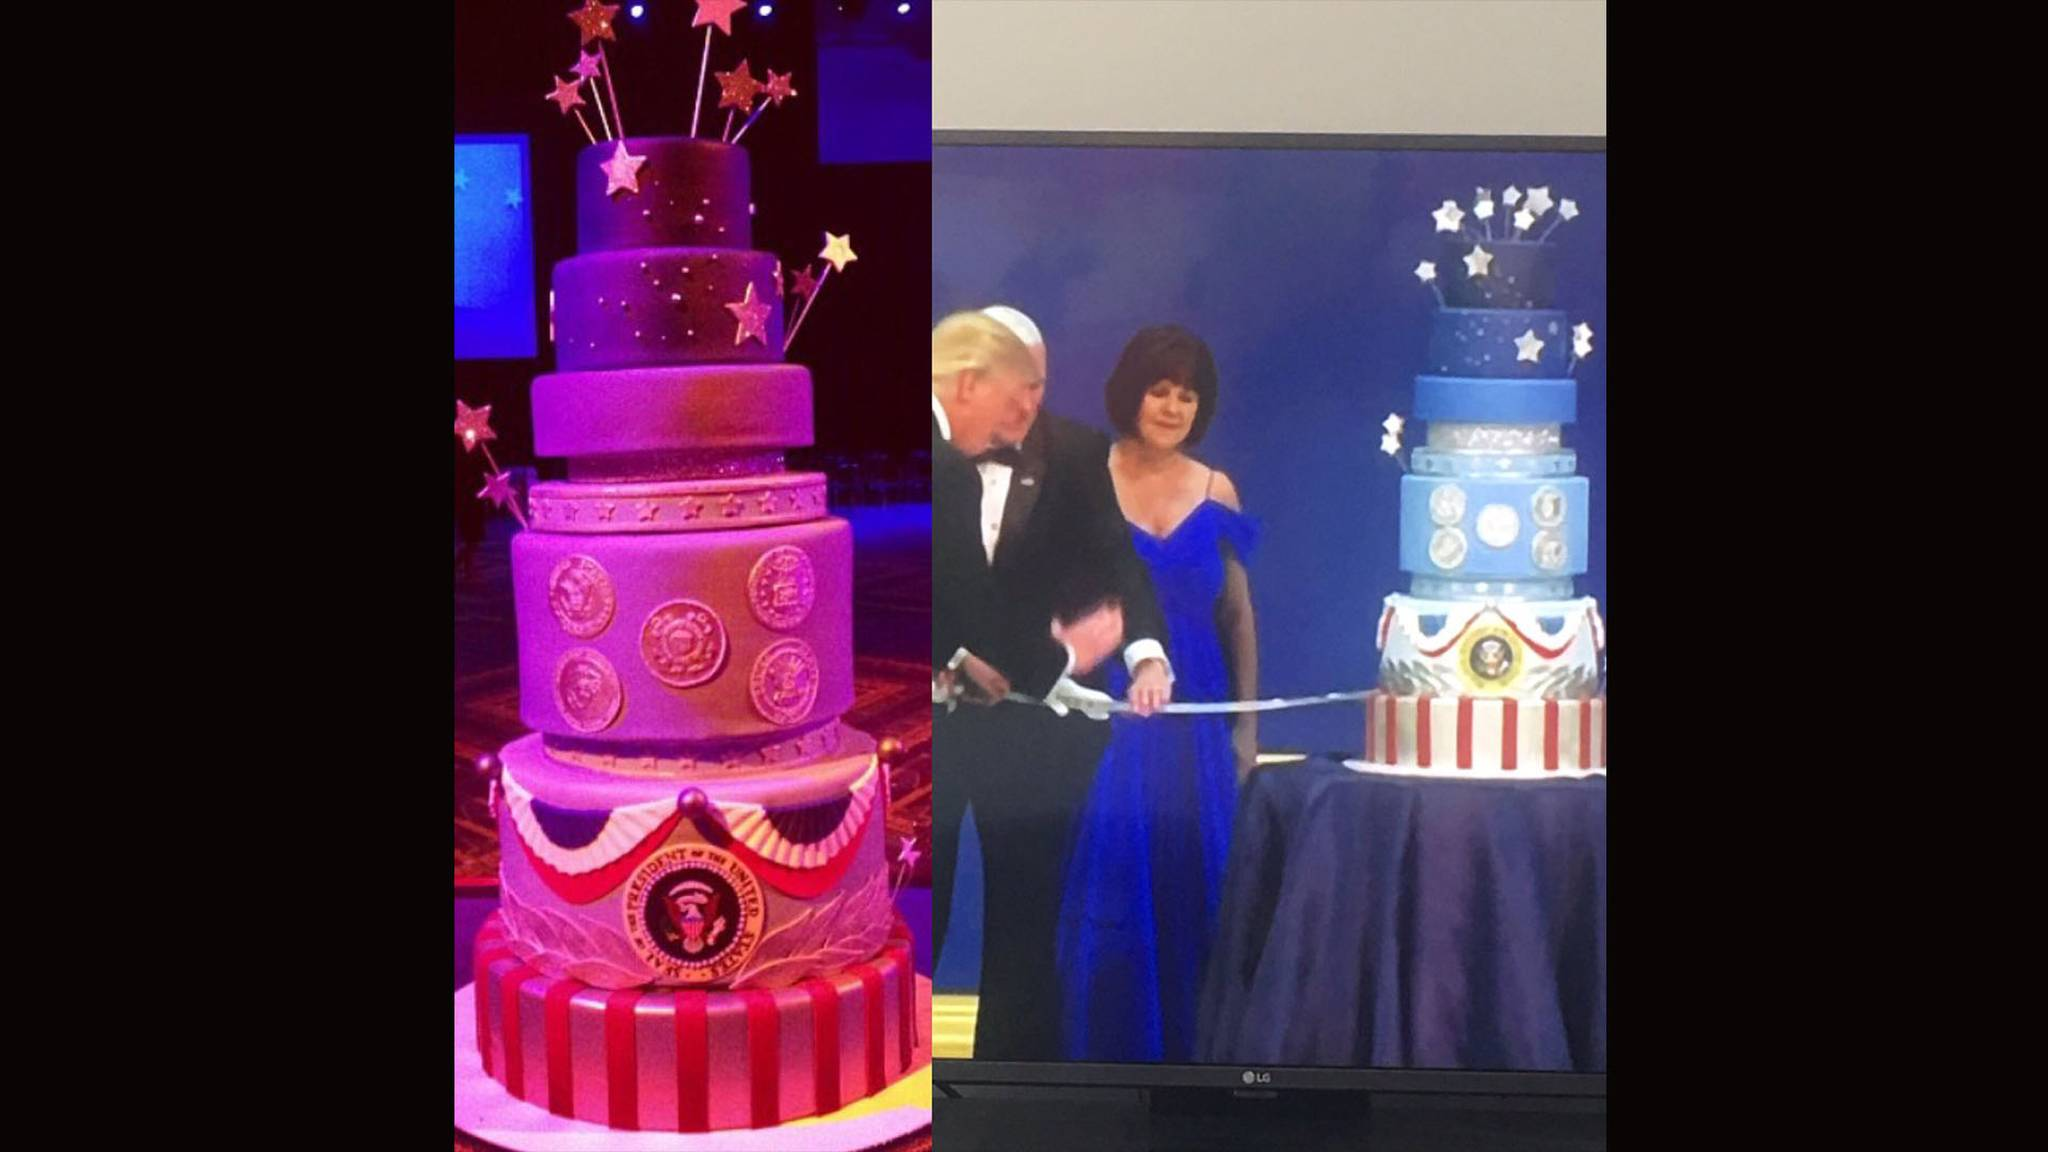 Bakery Donates Profits From Trump's Plagiarized Cake to LGBT Group